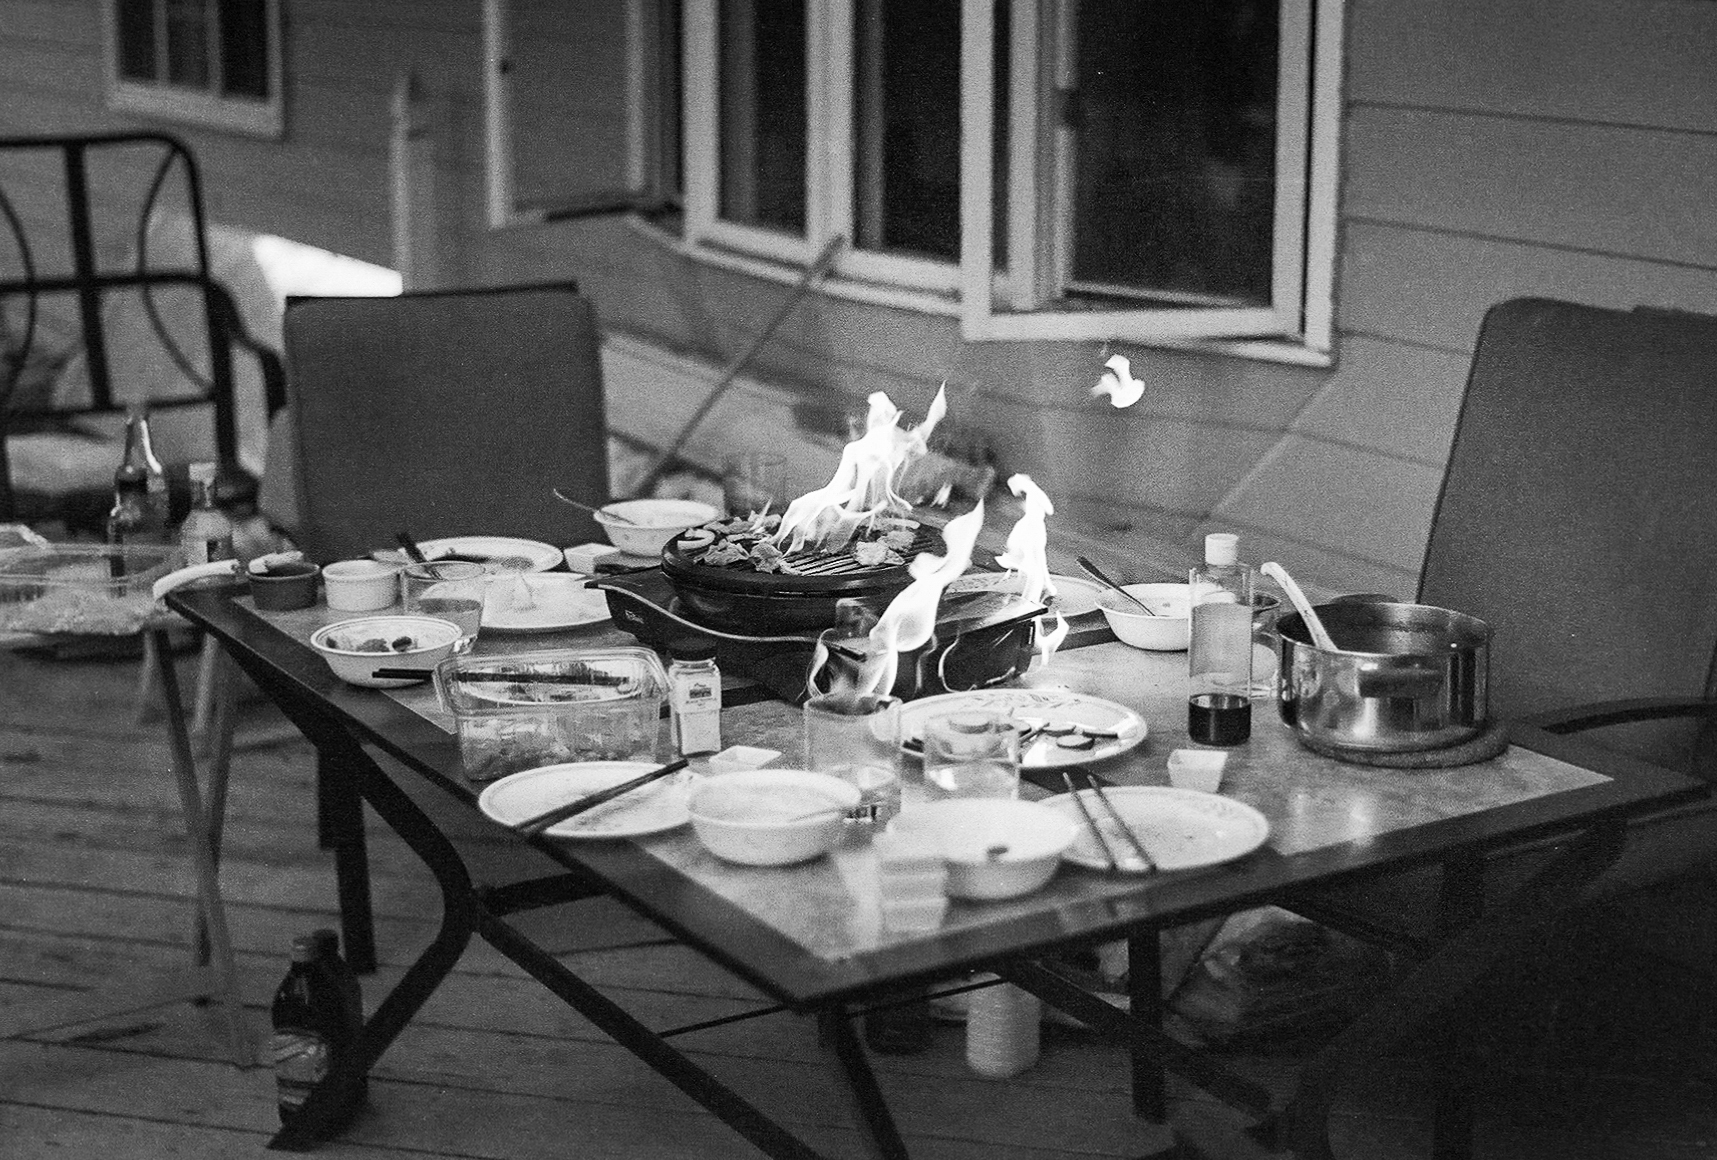 An outdoor dining table, with dishes, utensils, and a portable gas stove, which is engulfed in flame.